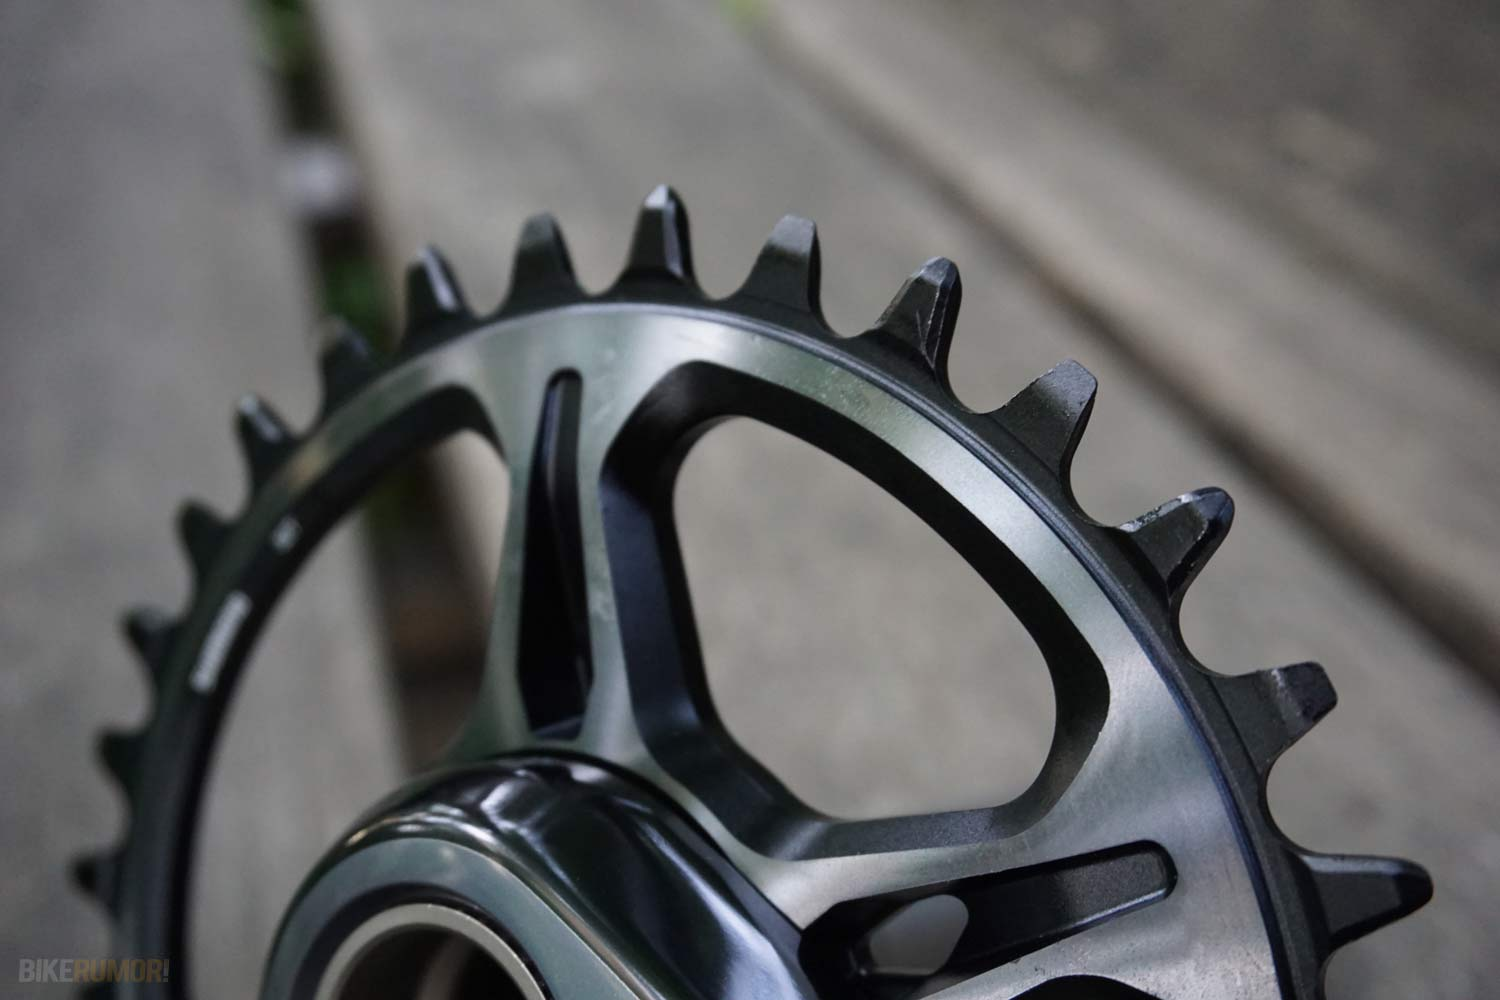 2019 Shimano XTR M9000 crankset and direct mount chainrings